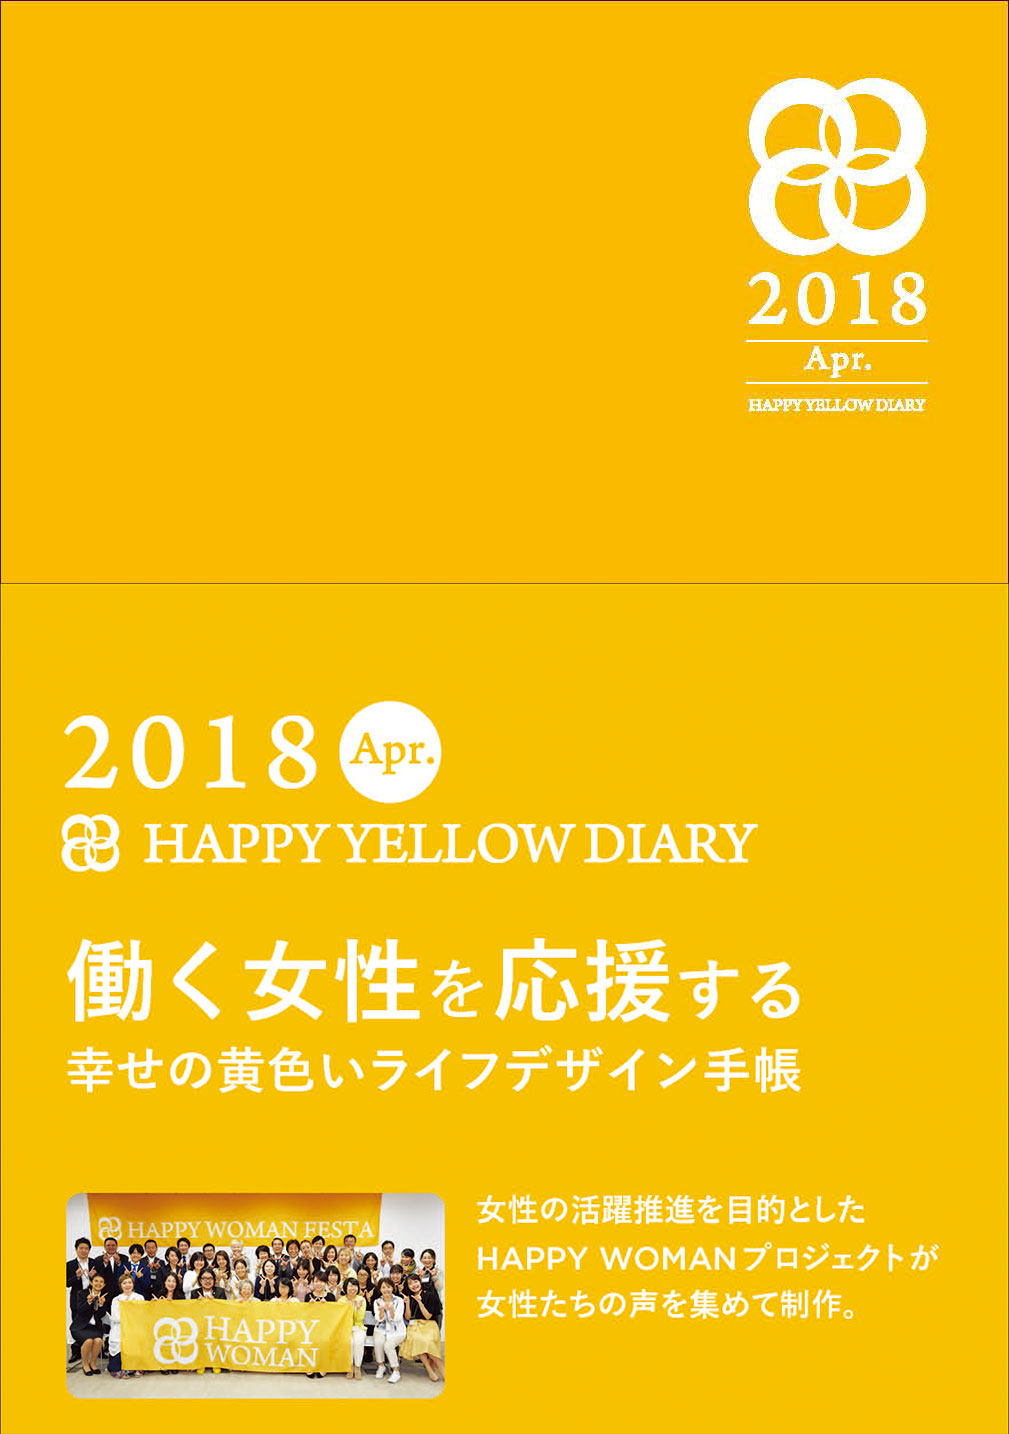 HAPPY YELLOW DAIRY